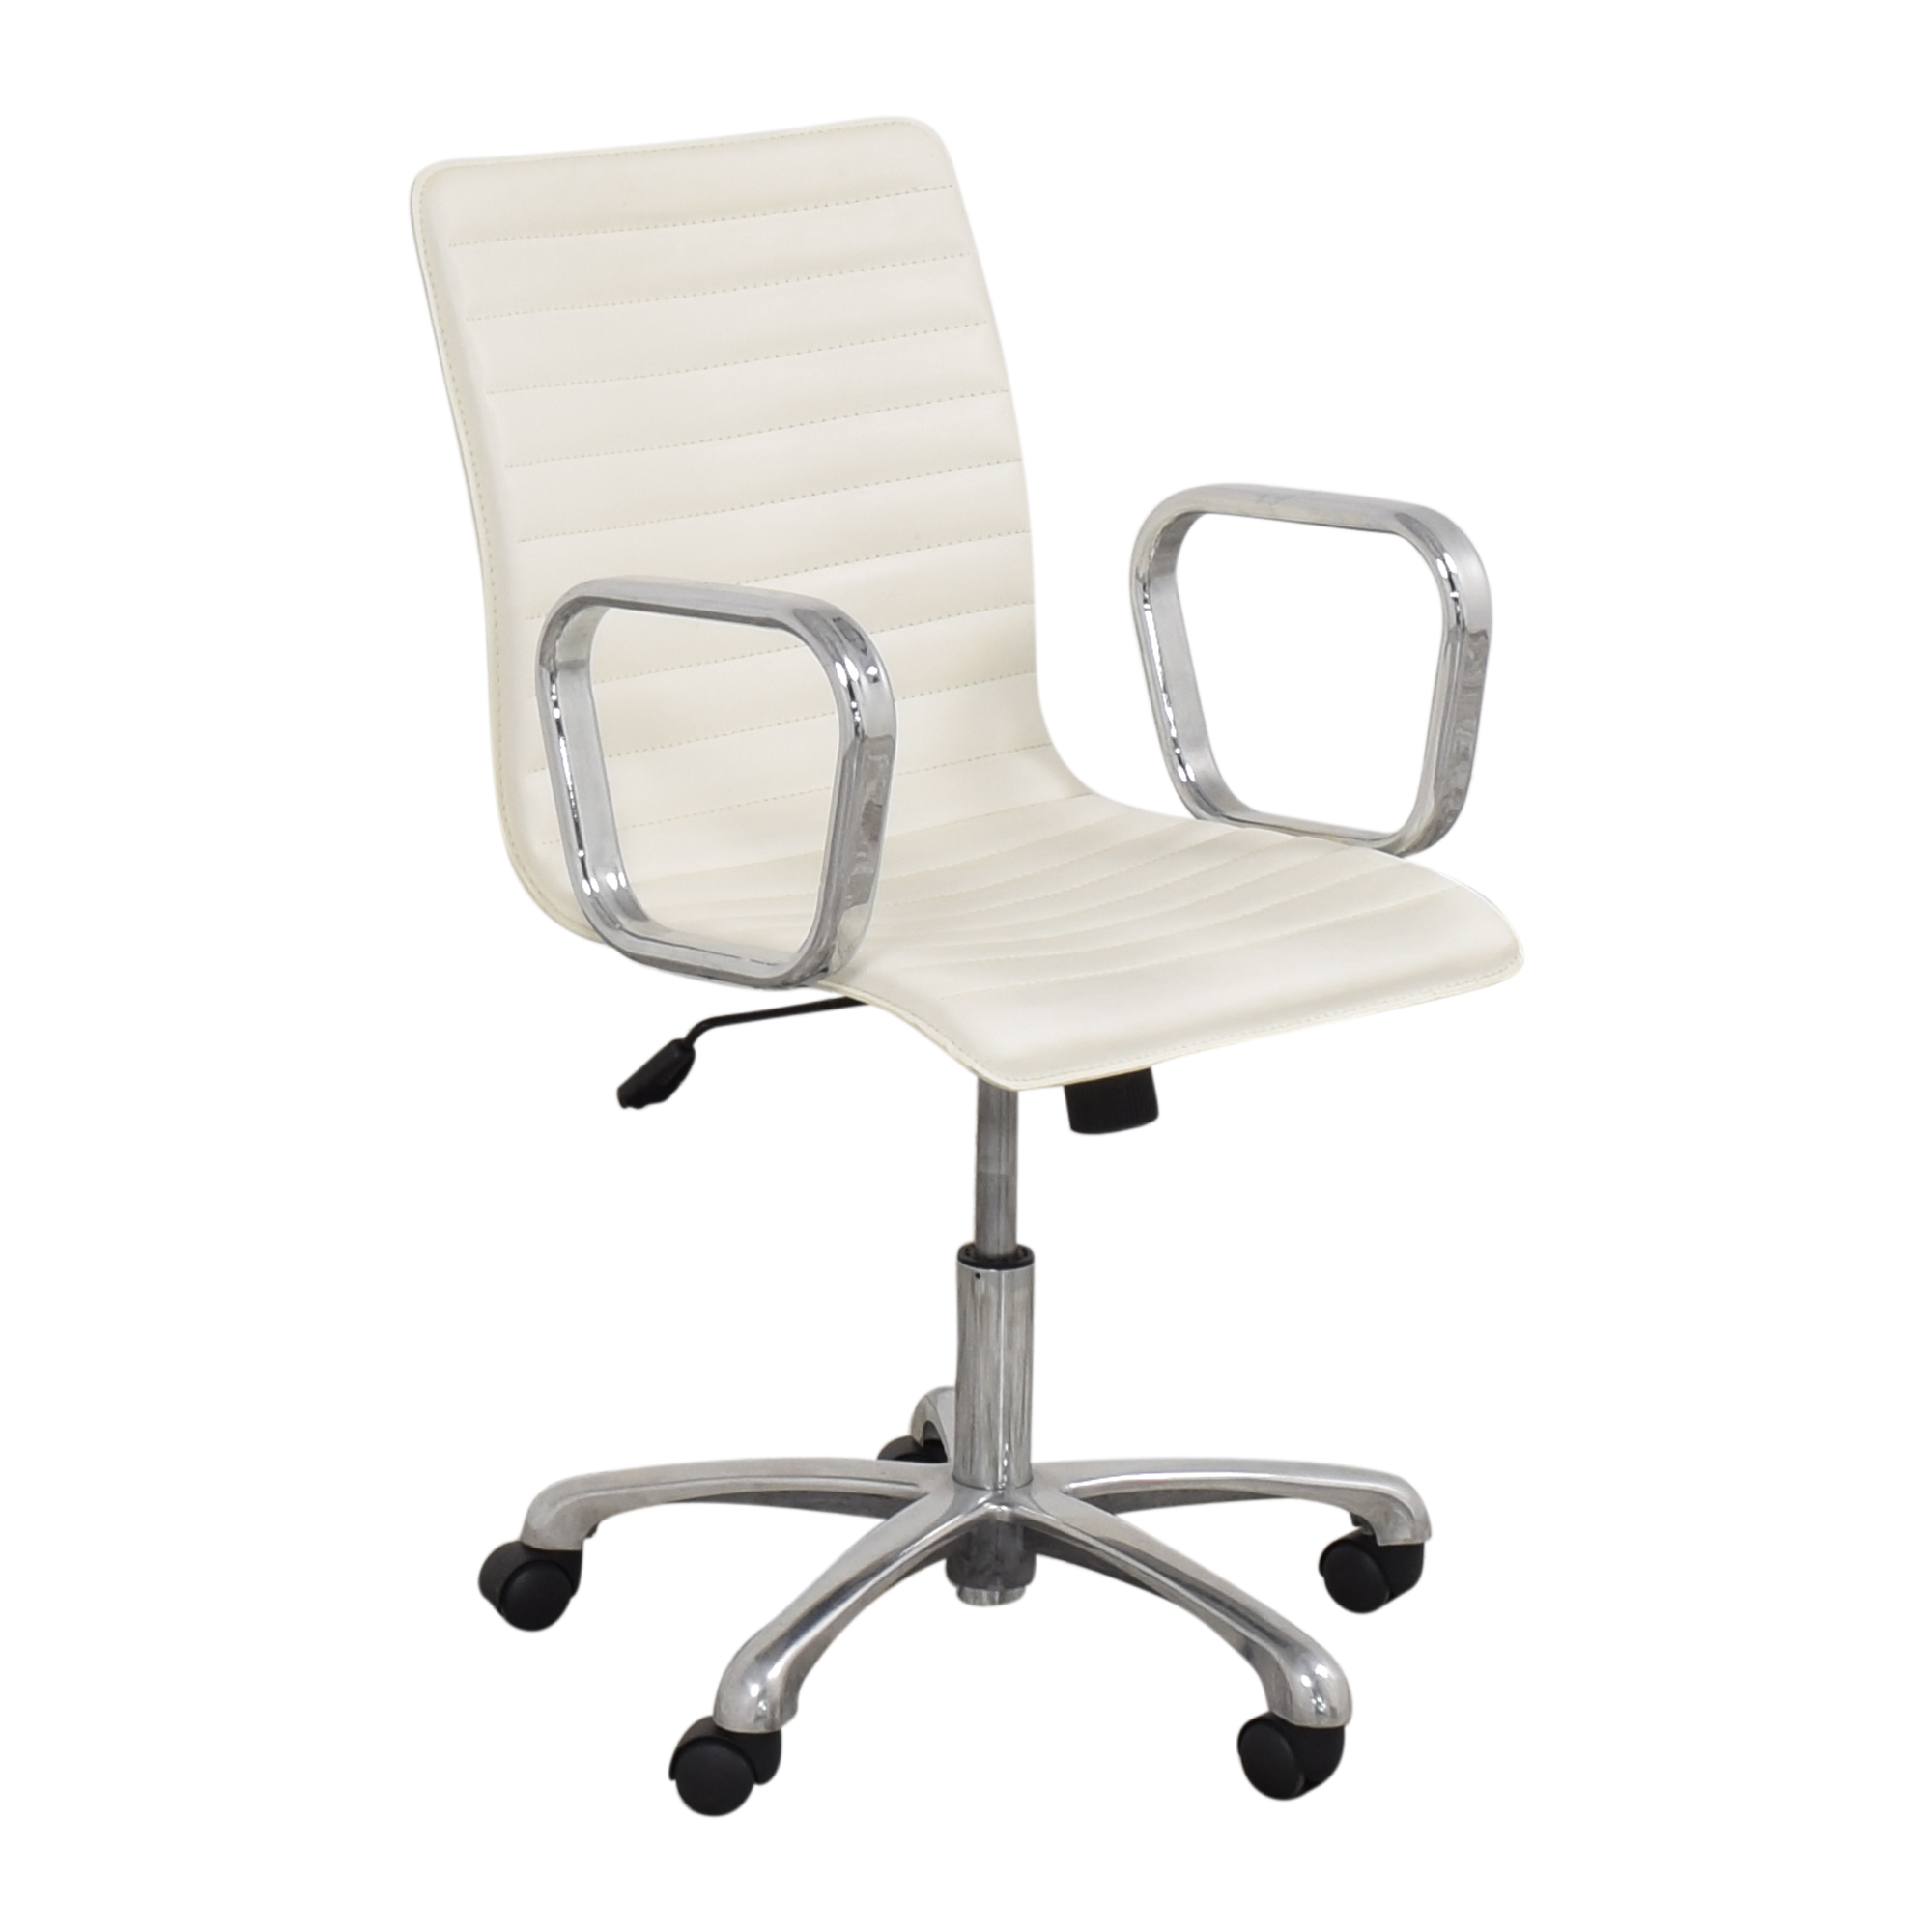 buy Crate & Barrel Ripple Ivory Office Chair with Chrome Base Crate & Barrel Home Office Chairs